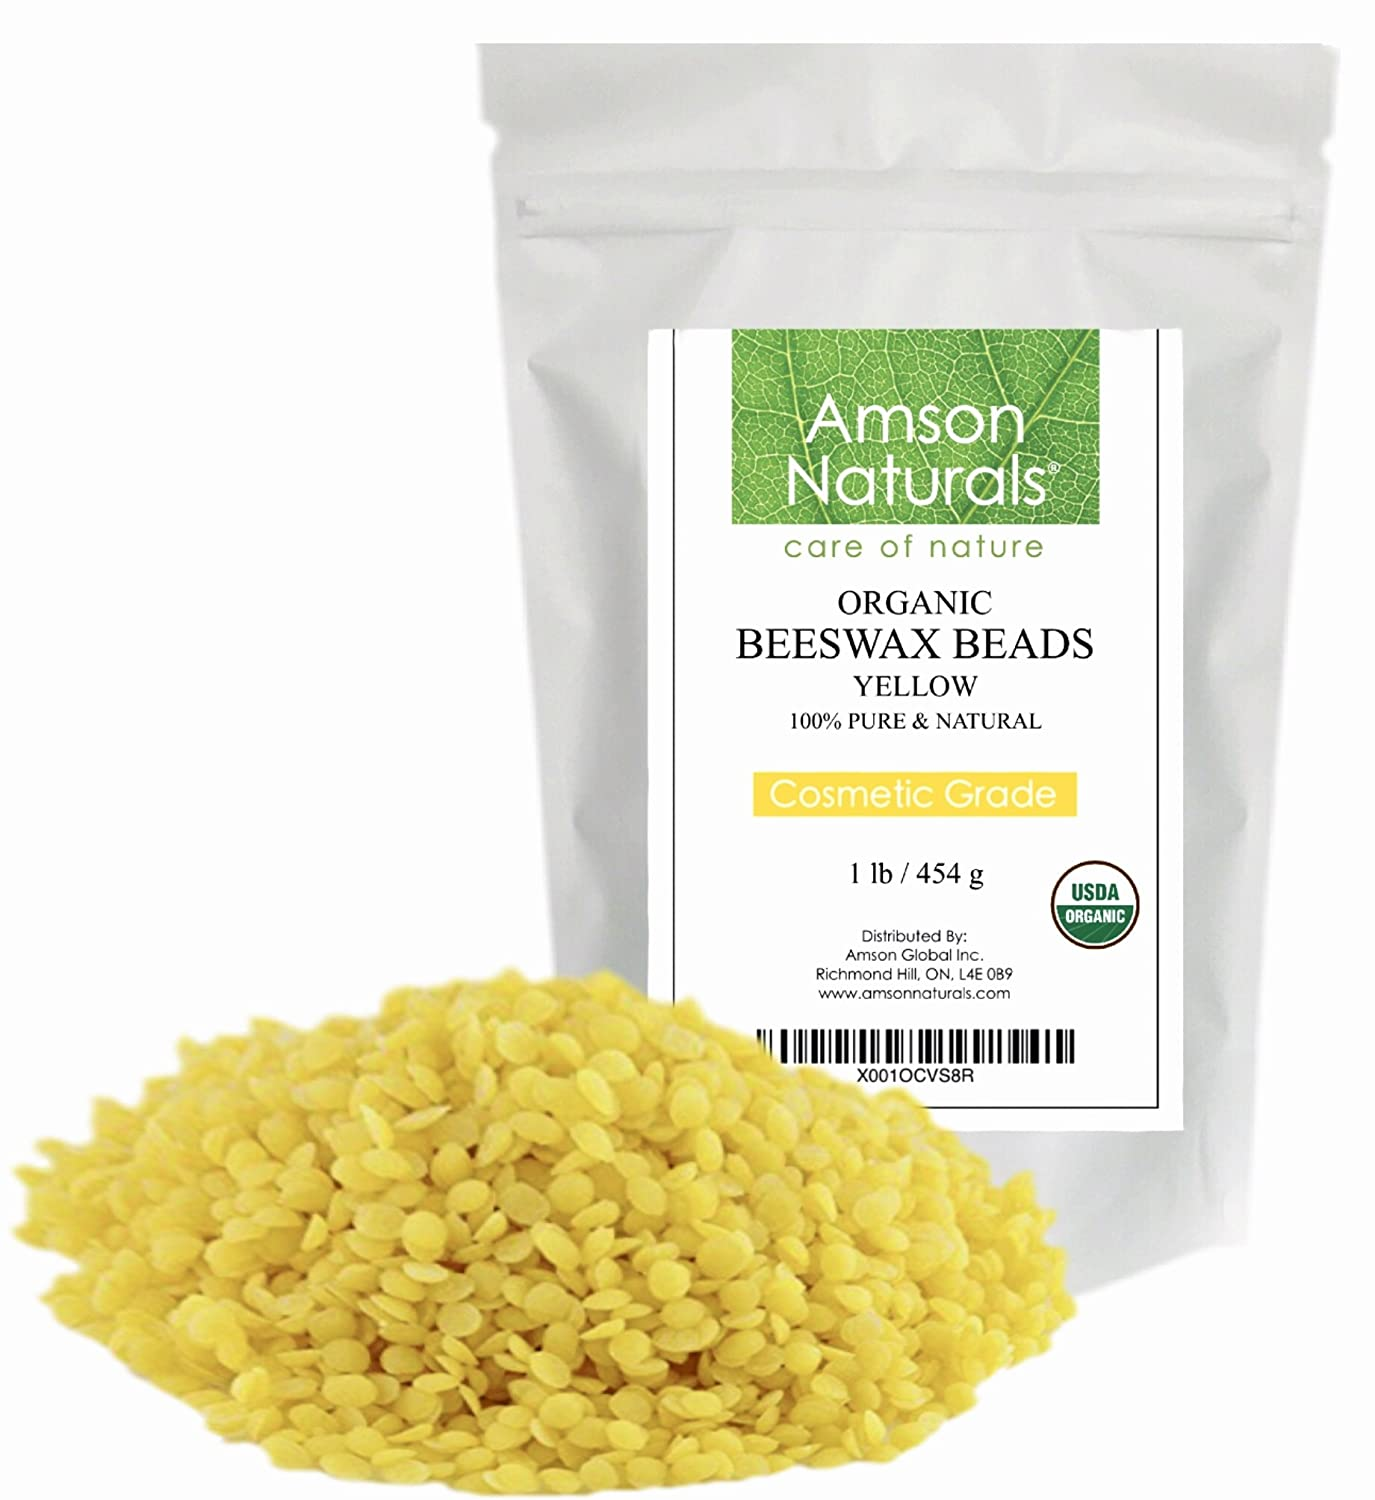 BEESWAX PELLETS YELLOW 16oz/1lb -USDA Organic - by Amson Naturals –100% Pure & Natural Premium Quality Beeswax- 3 x Filtered, Natural mild sweet Aroma, Easy Melt Pastilles- for DIY, Candles, Skin Care, Lip Balm, Lotion, Deodorant, Furniture Polish, Cra